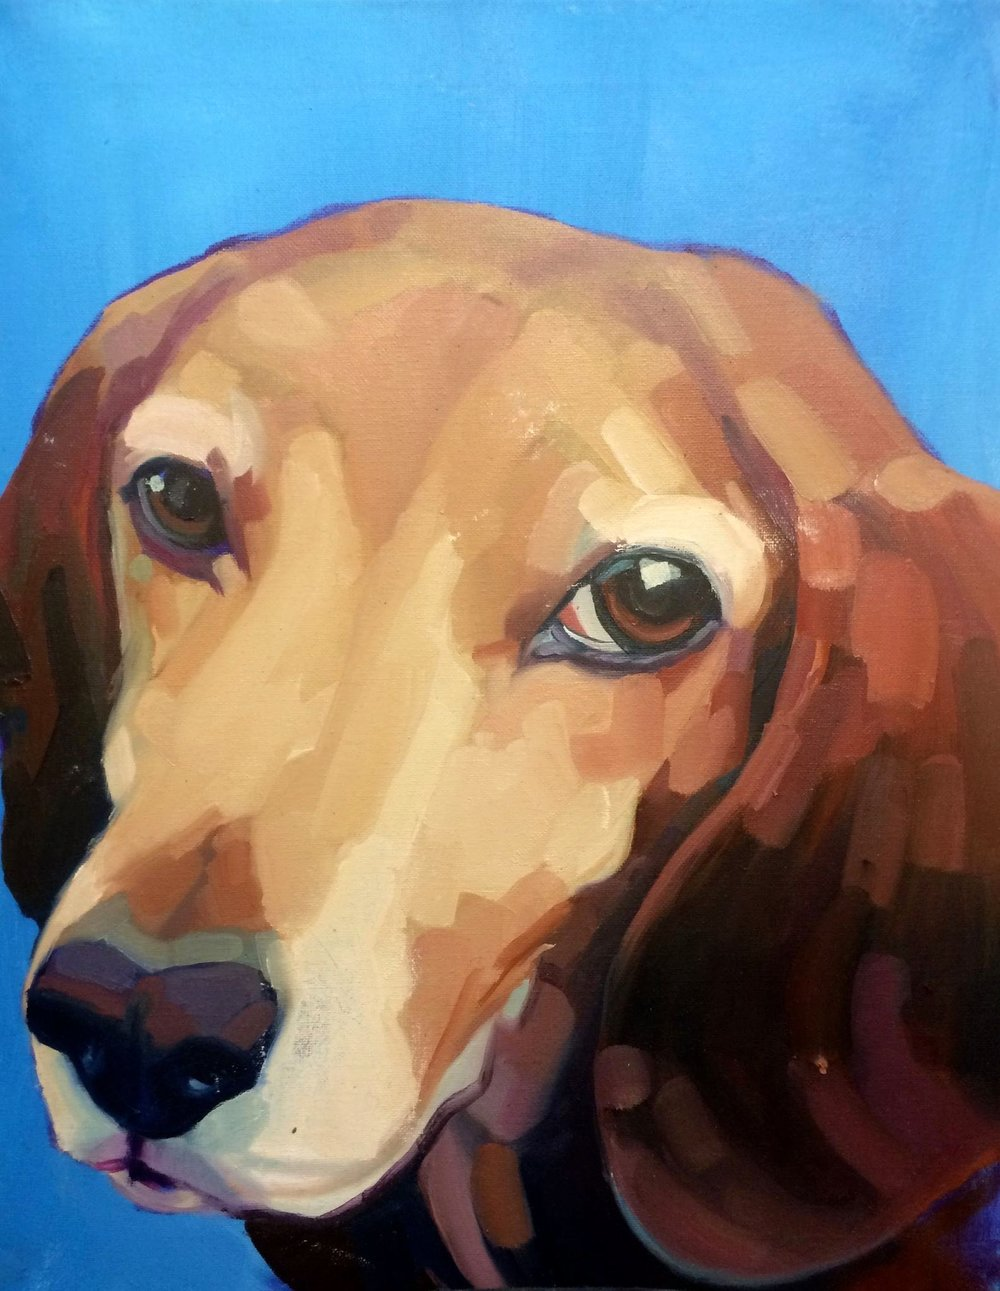 Bailey, 2015. Oil on canvas. 18x24